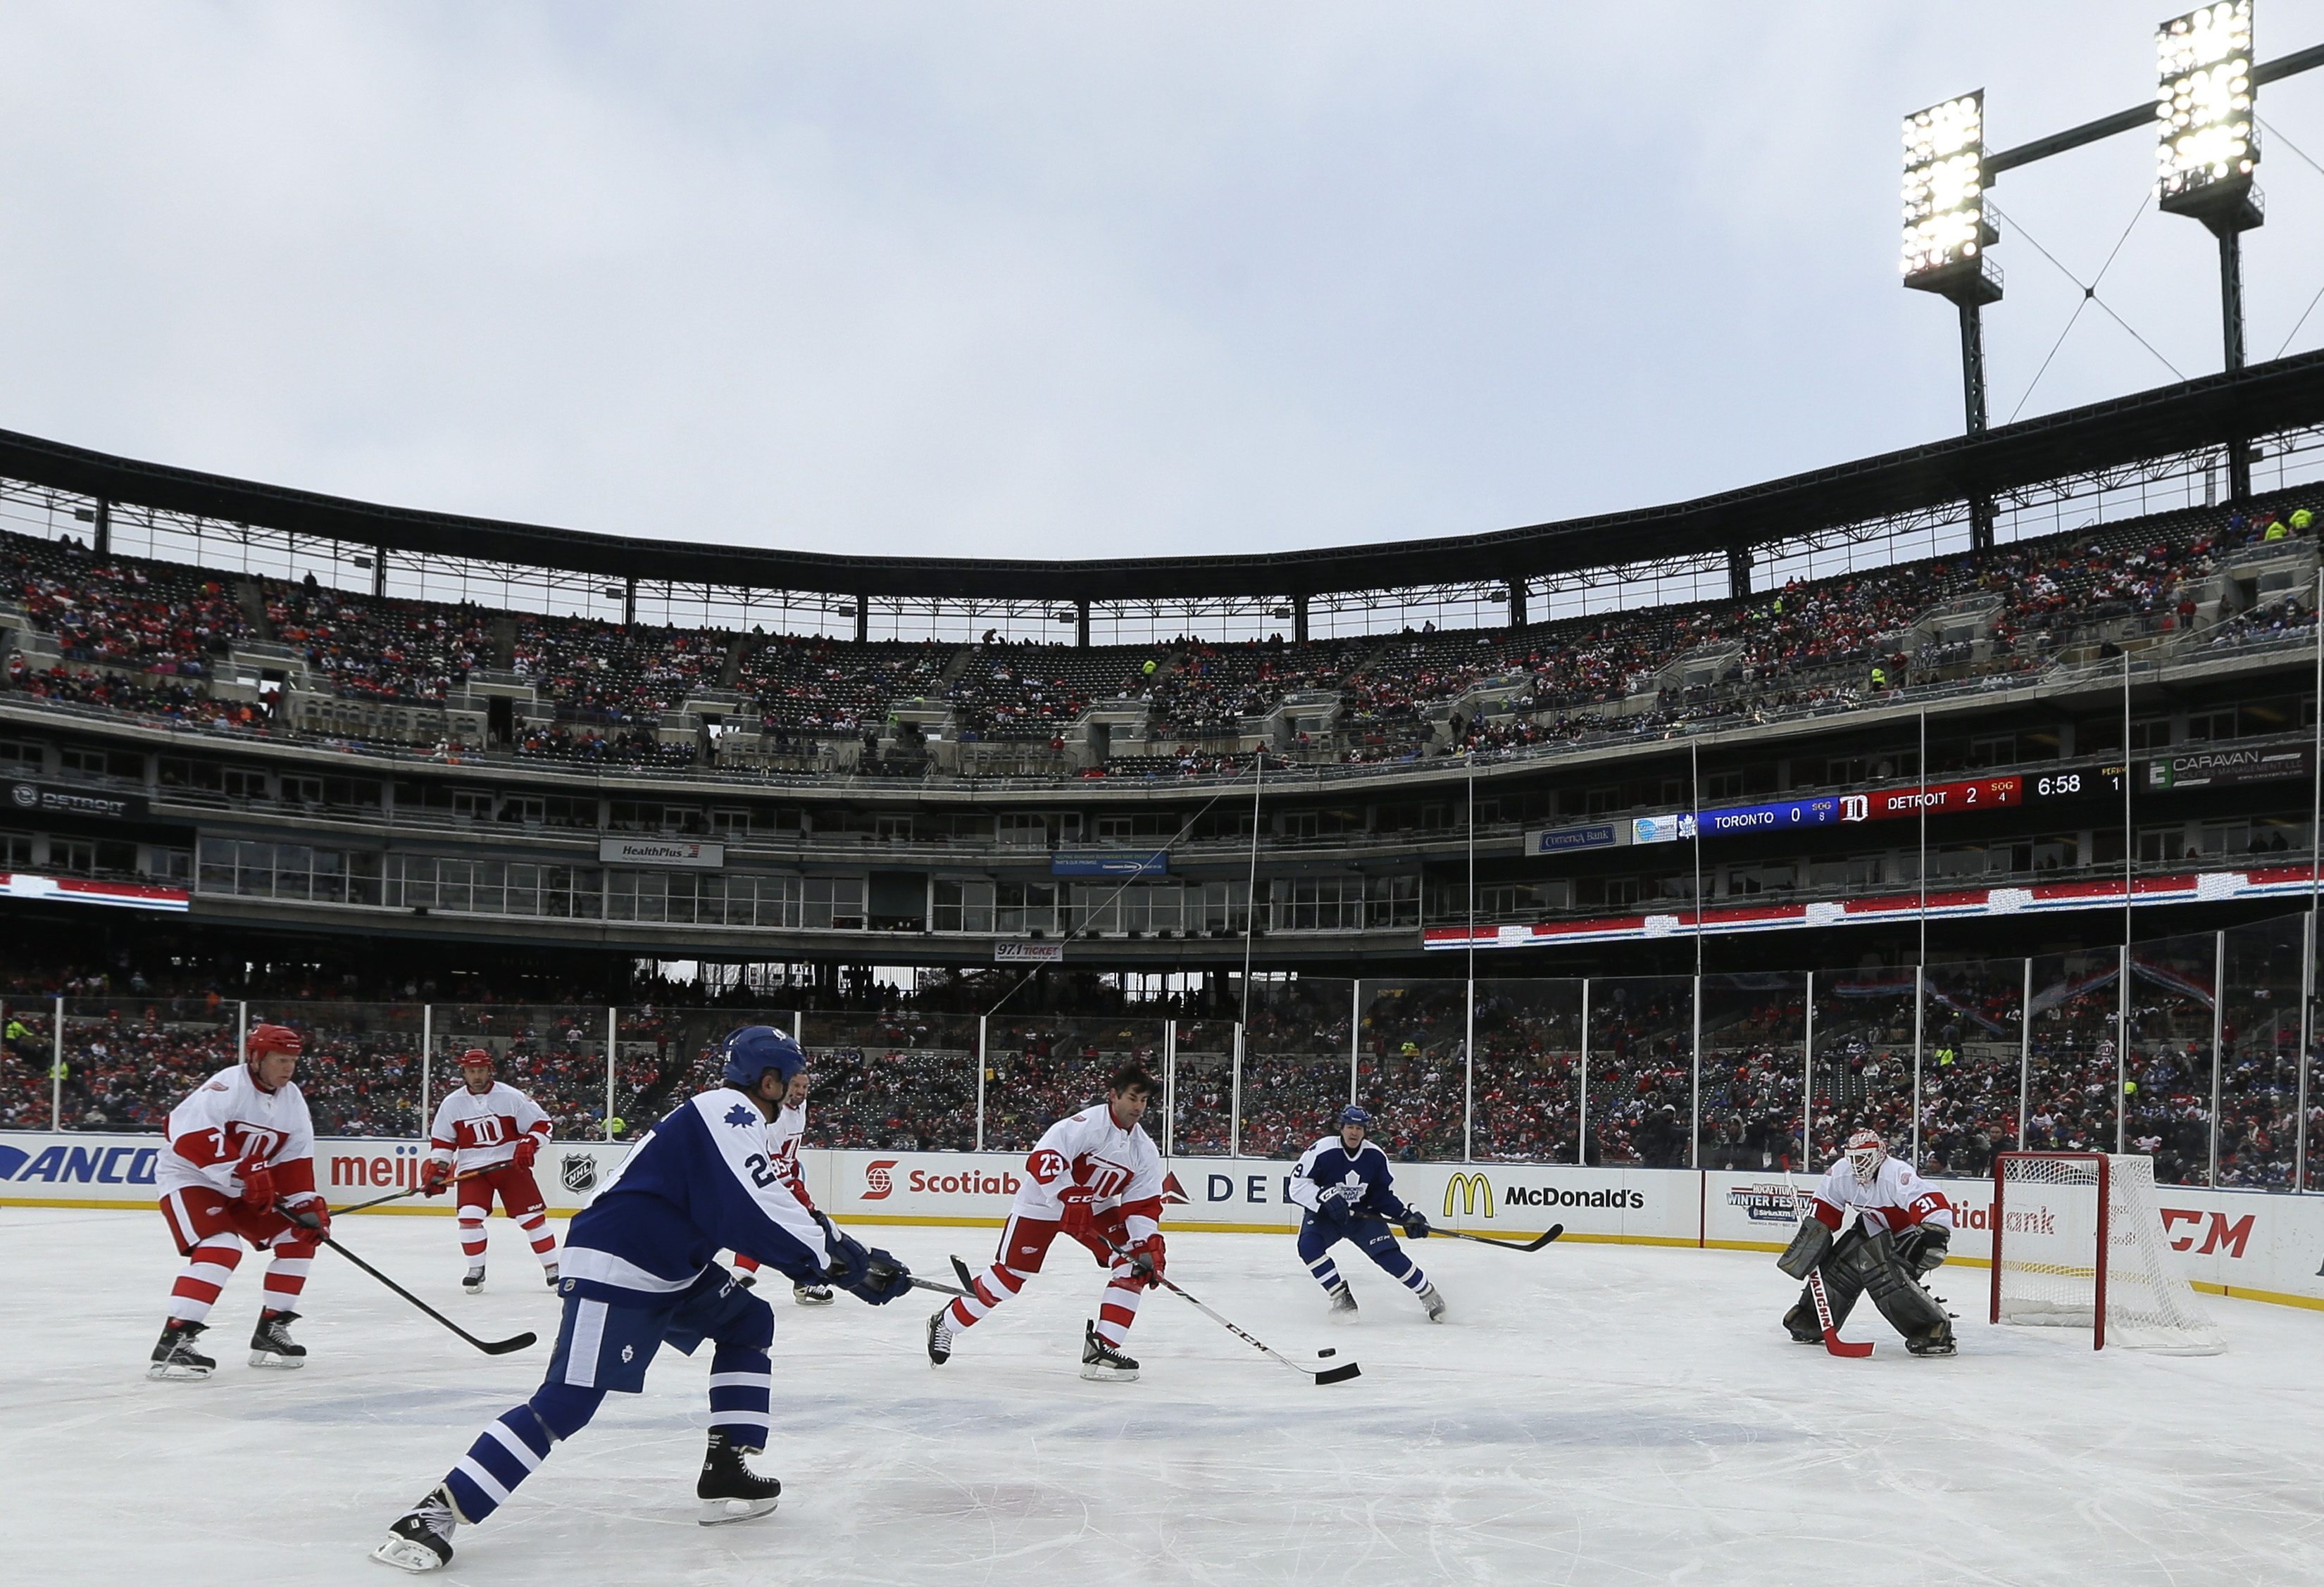 9cea4d8a9db Red Wings alumni sweep Maple Leafs at Comerica Park - Washington Times